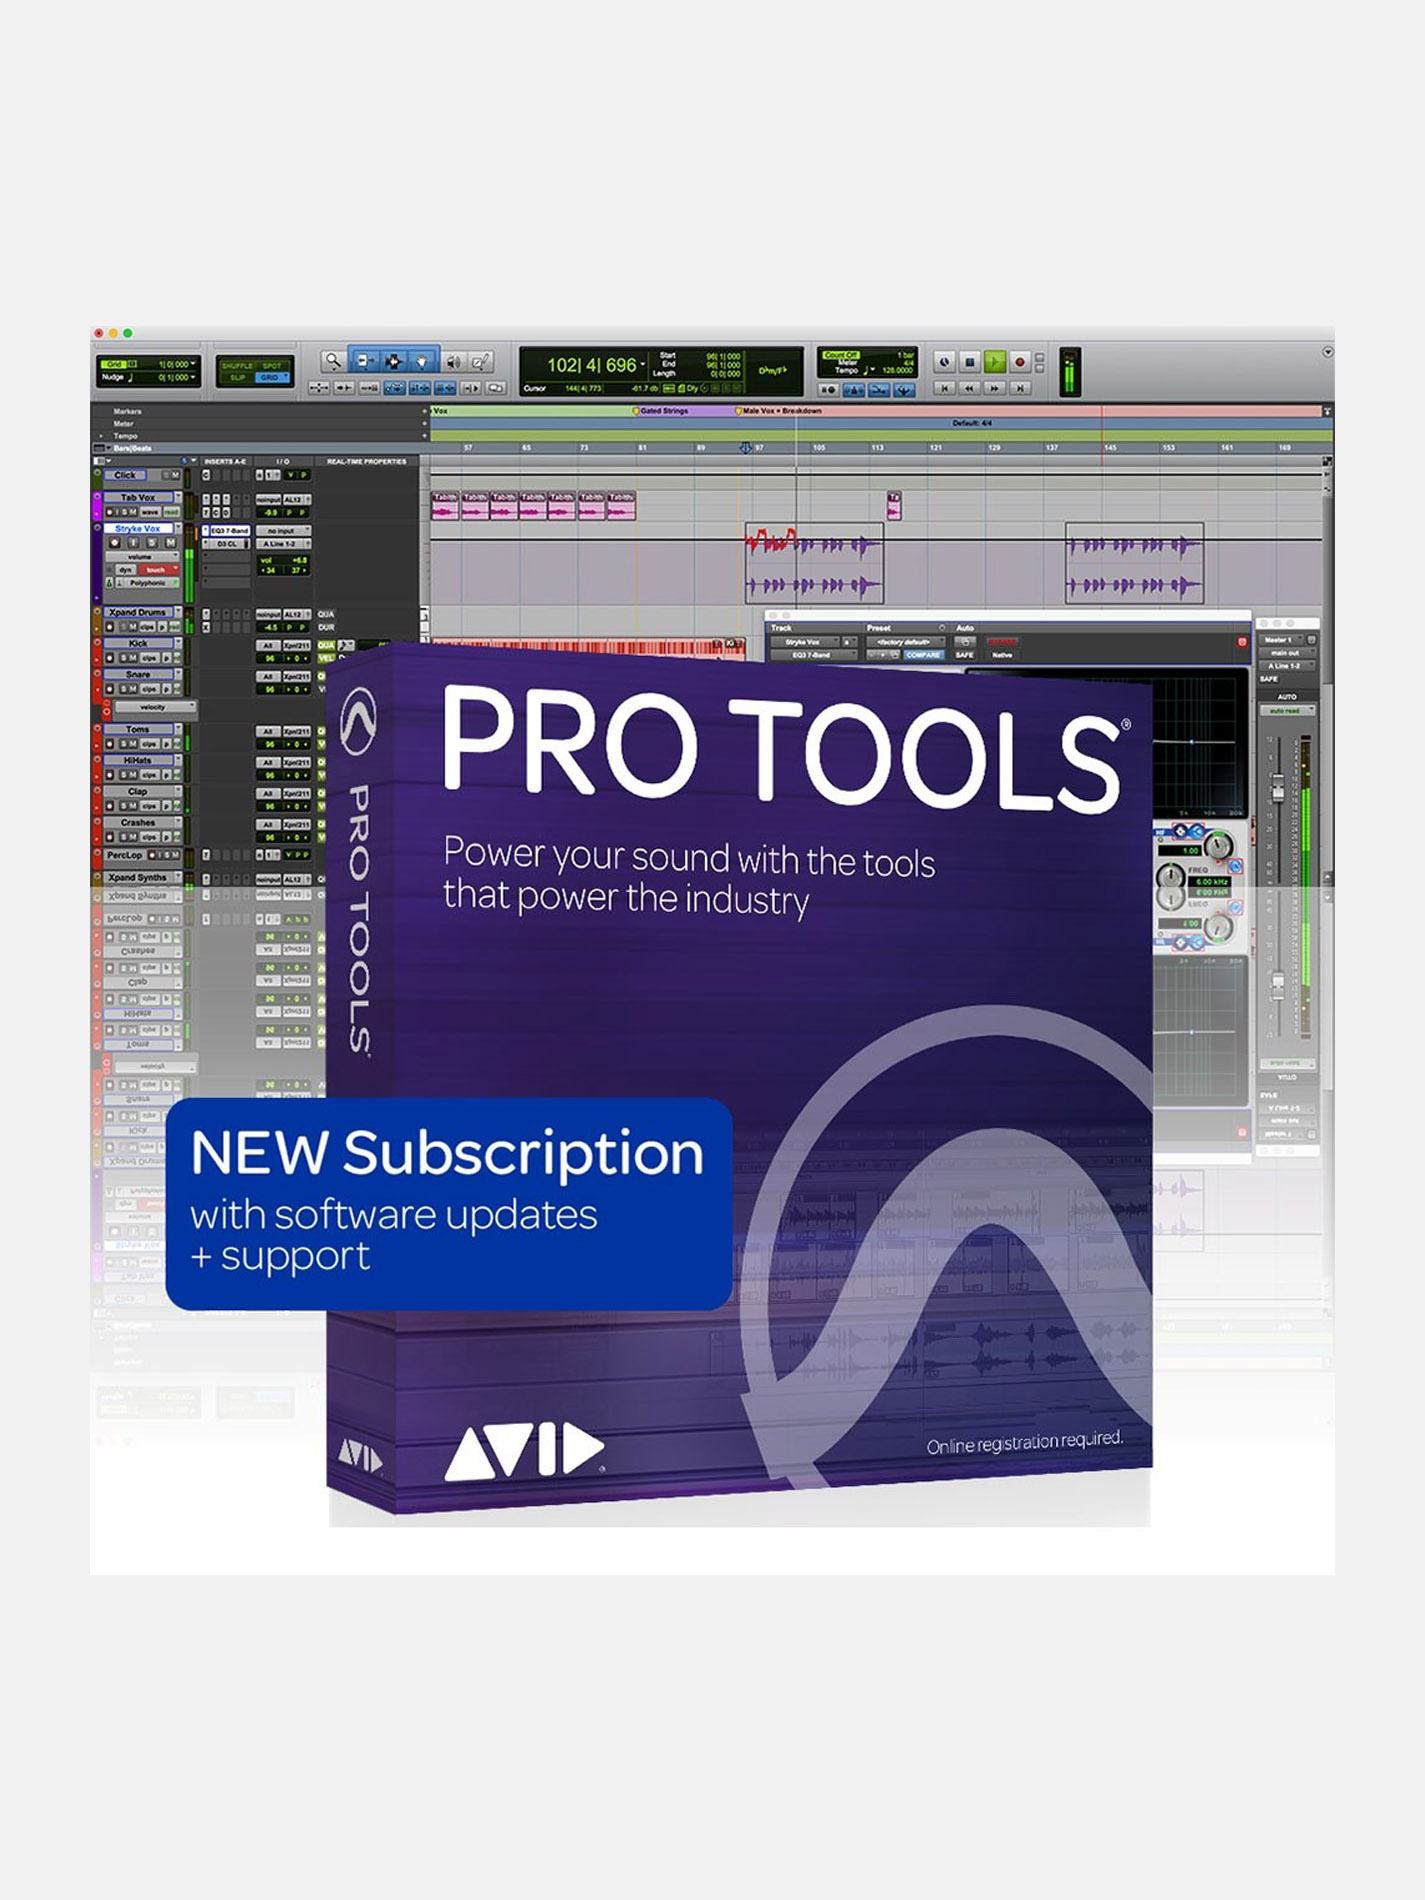 AVID – PRO TOOLS SOTTOSCRIZIONE ANNUALE (1-Year Subscription)